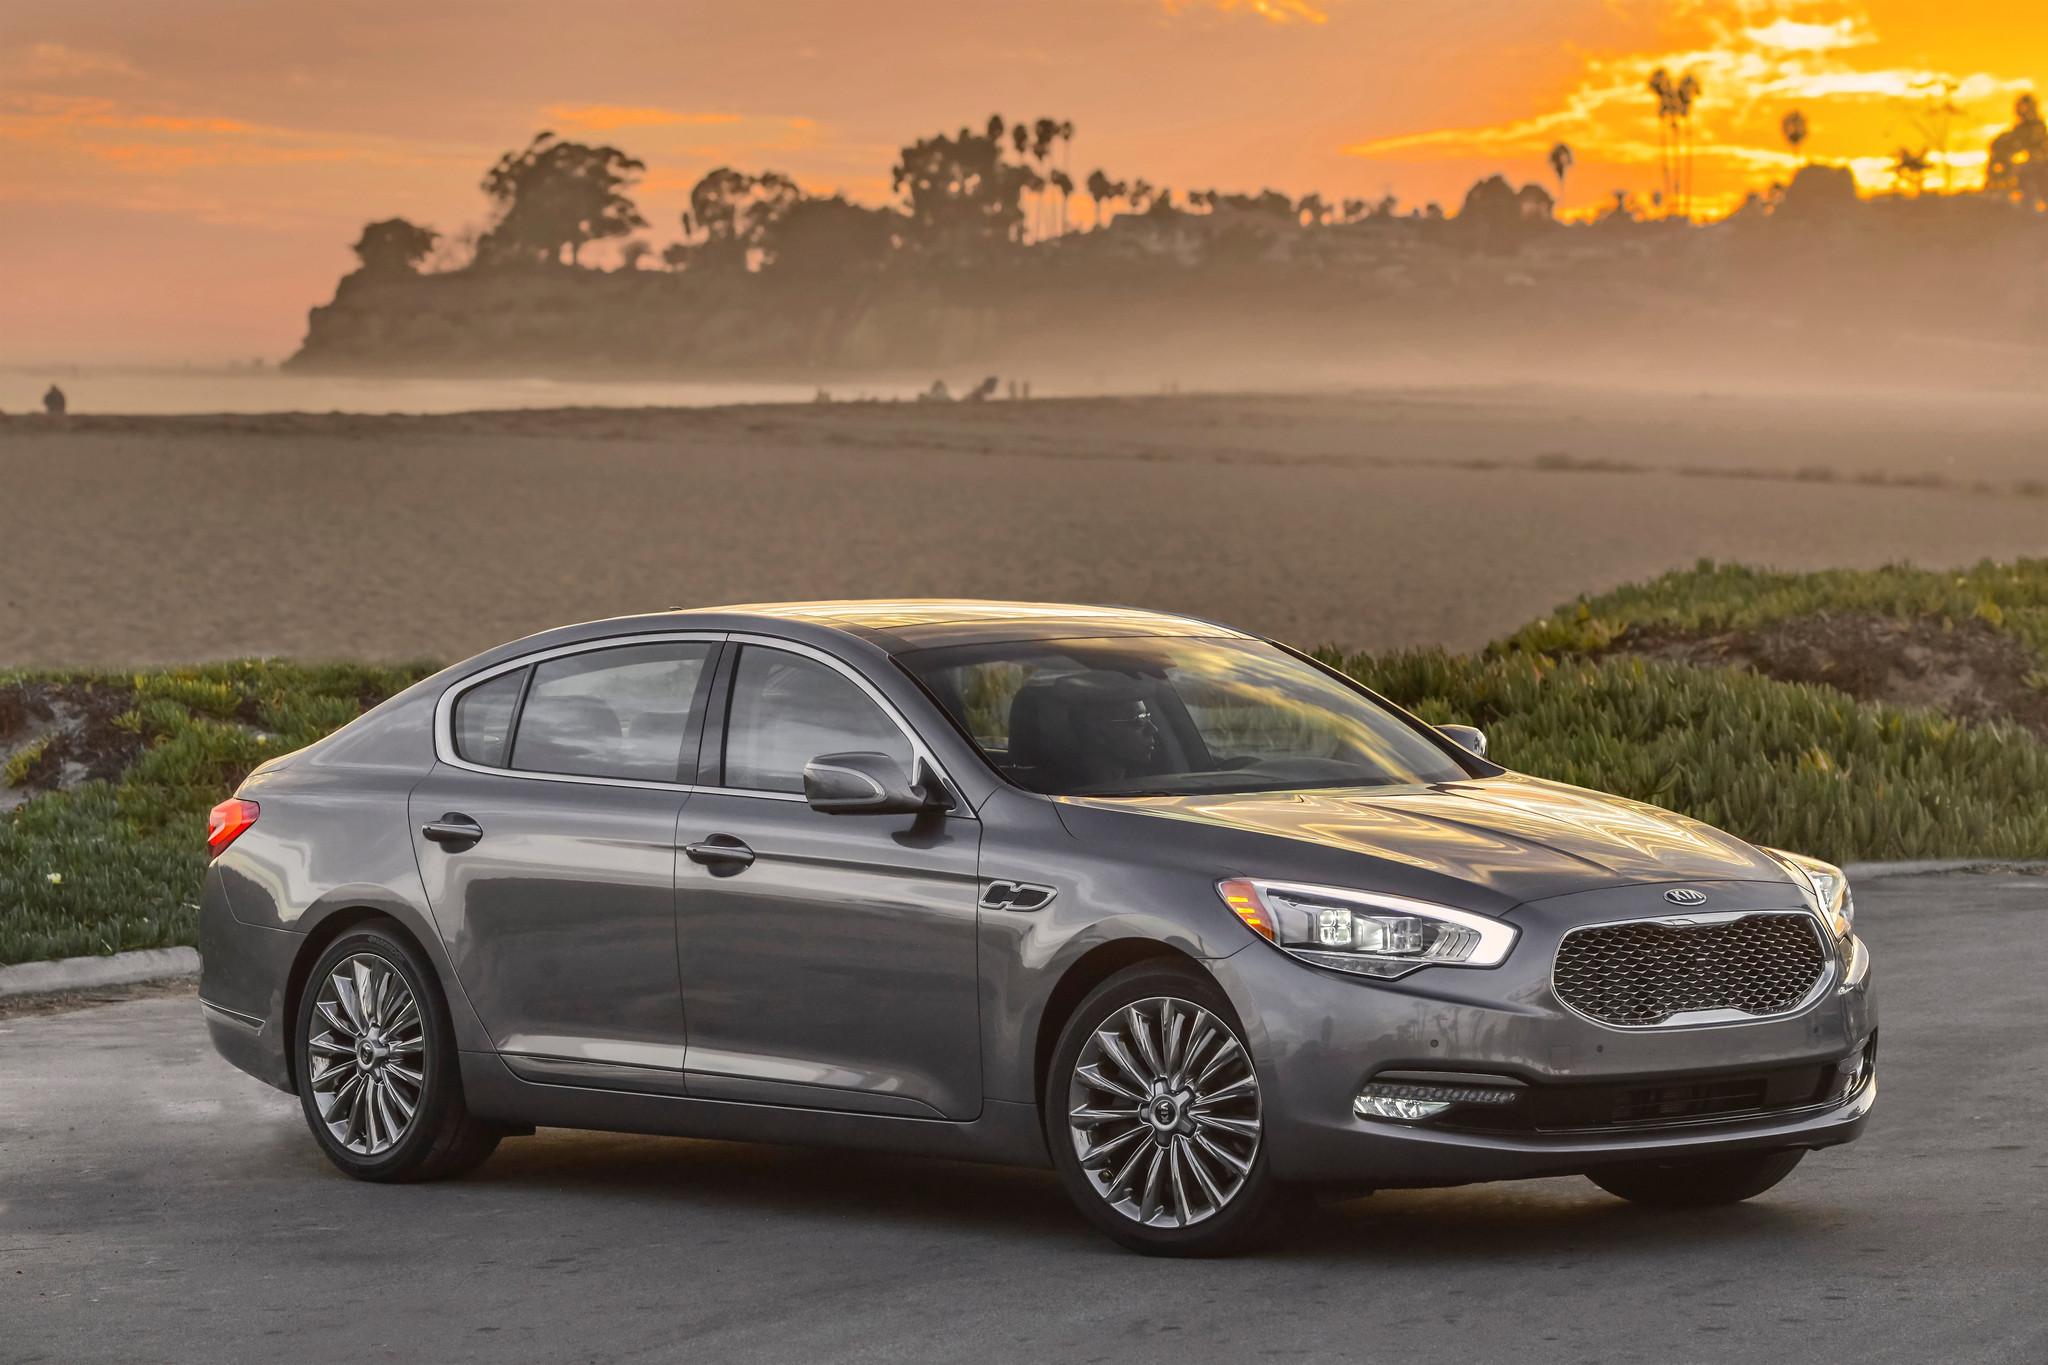 Auto review k900 shows kia can offer value with 66 000 price tag la times